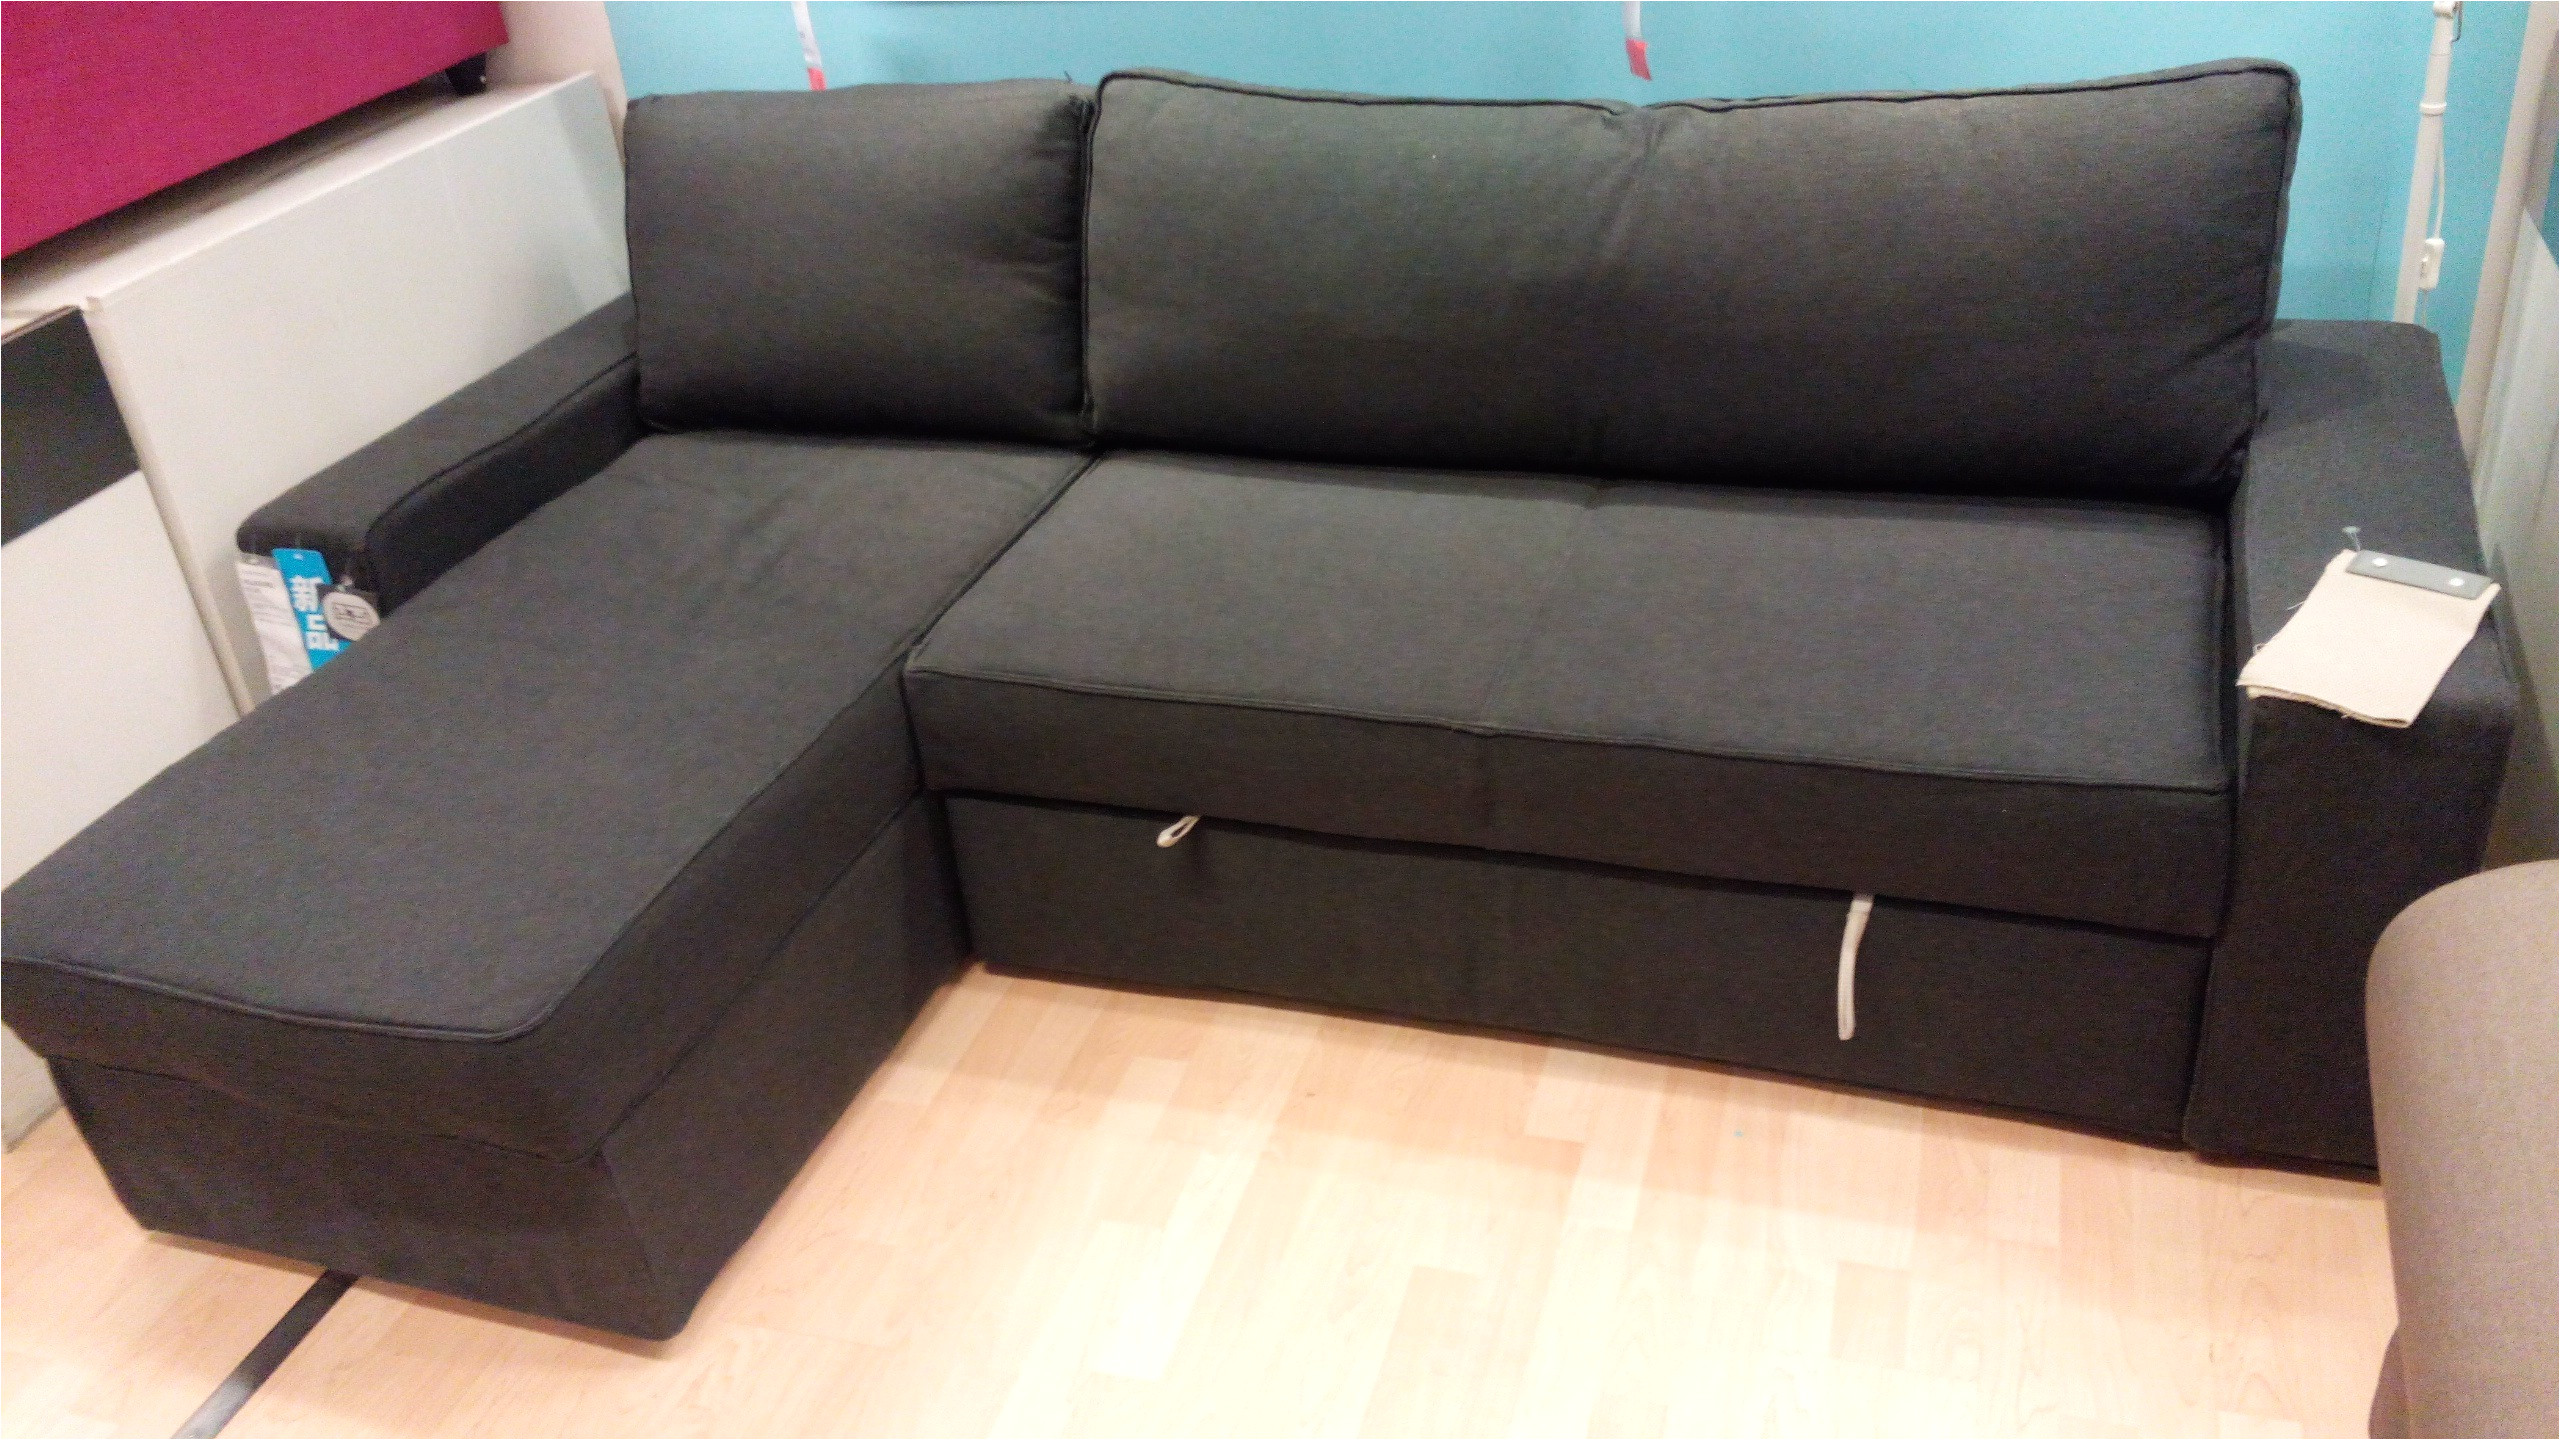 ikea schlafsofa friheten einzigartig awesome friheten sofa bed review designsolutions usa sammlung of ikea schlafsofa friheten